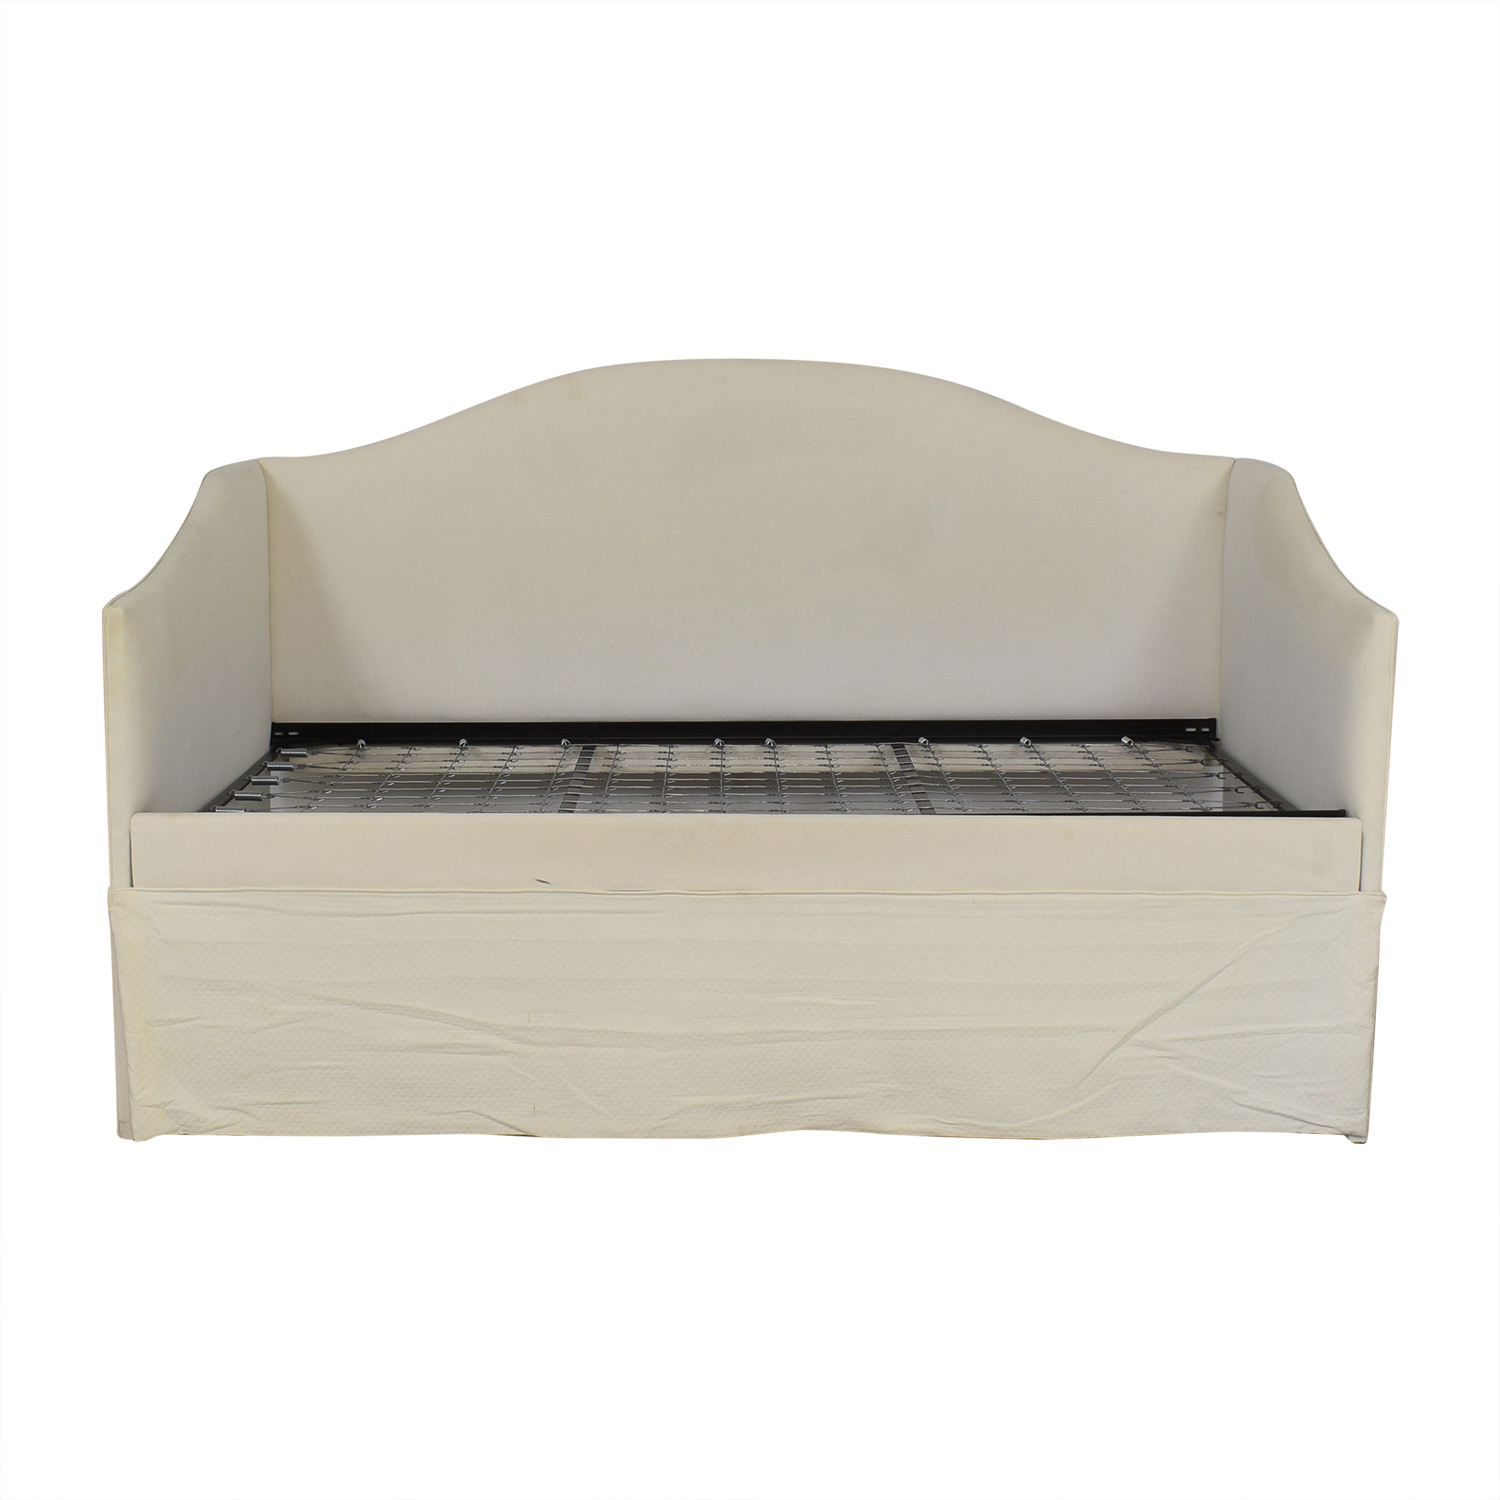 Ballard Designs Ballard Designs Camden Daybed with Trundle Bed Frames